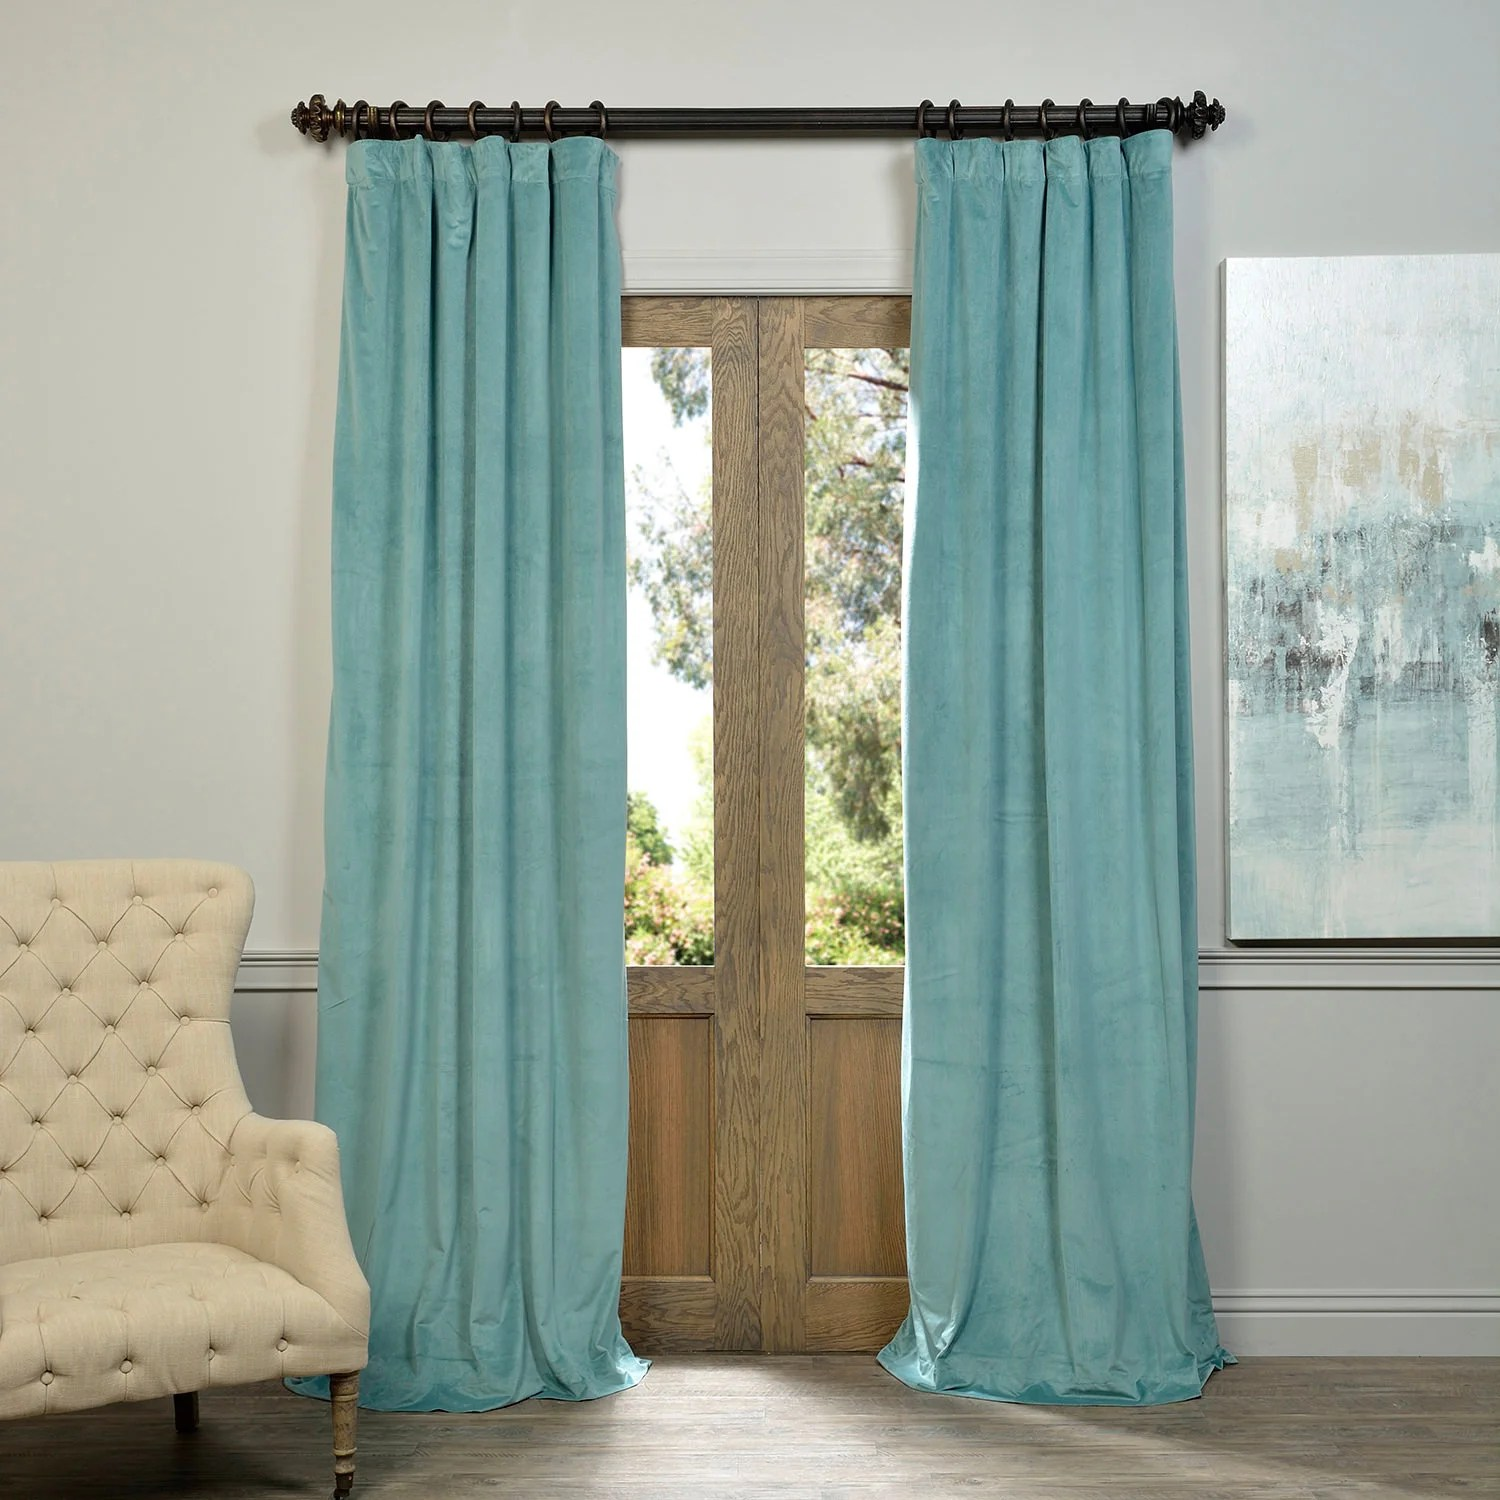 Teal Blackout Curtains Exclusive Fabrics Signature Velvet 84 Inch Blackout Curtain Panel 50 X 84